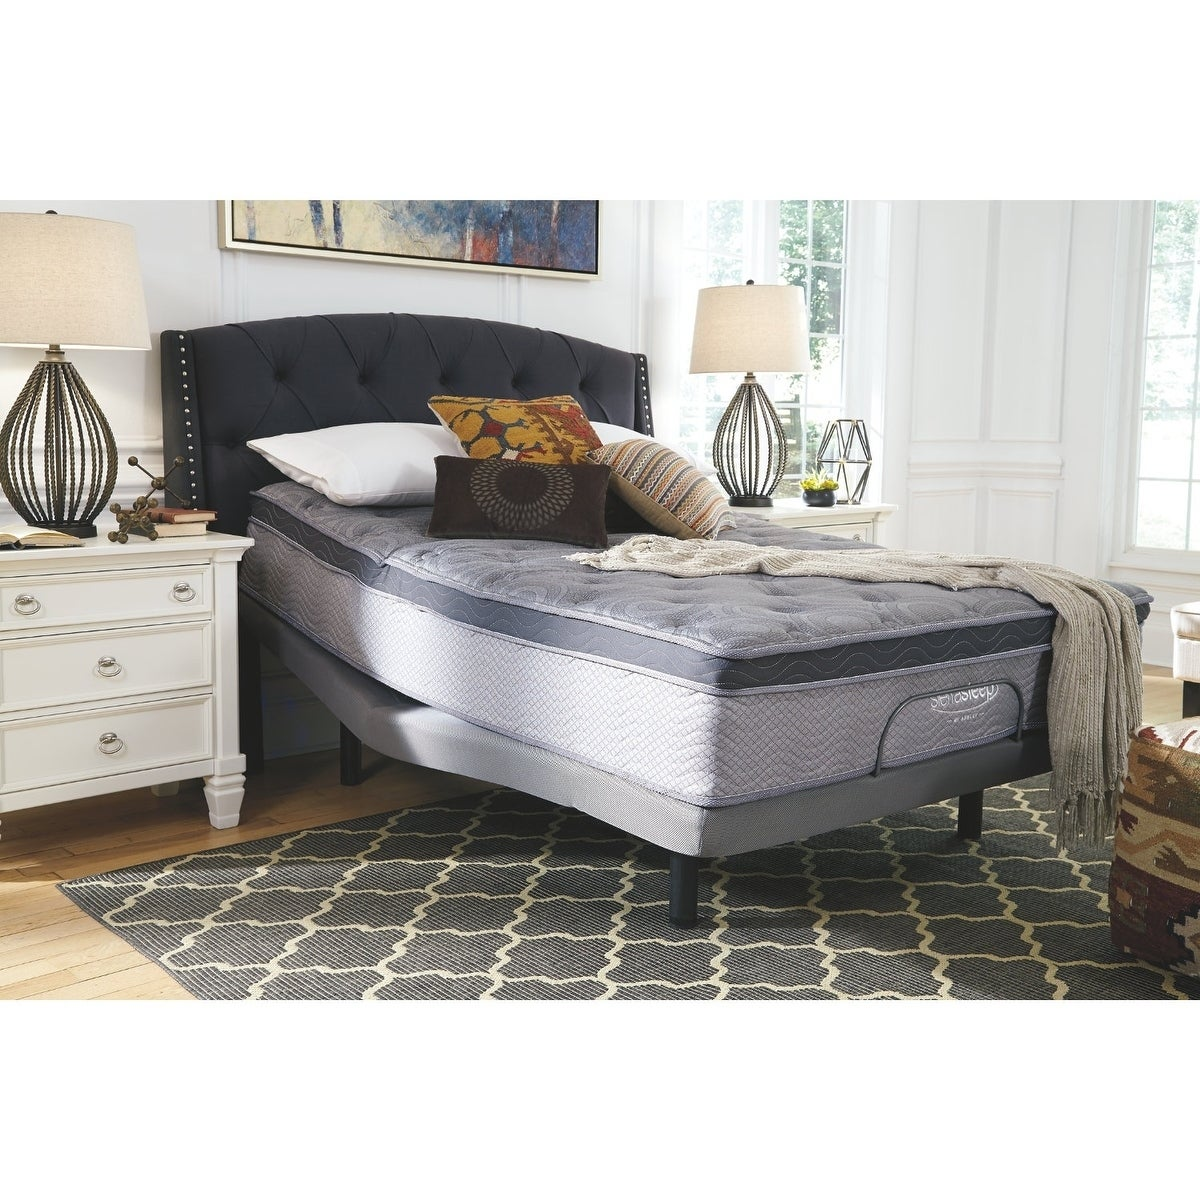 Signature Design By Ashley Augusta 12 Inch Pillowtop Mattress With Head Foot Model Good Adjustable Bed Frame On Sale Overstock 29237108